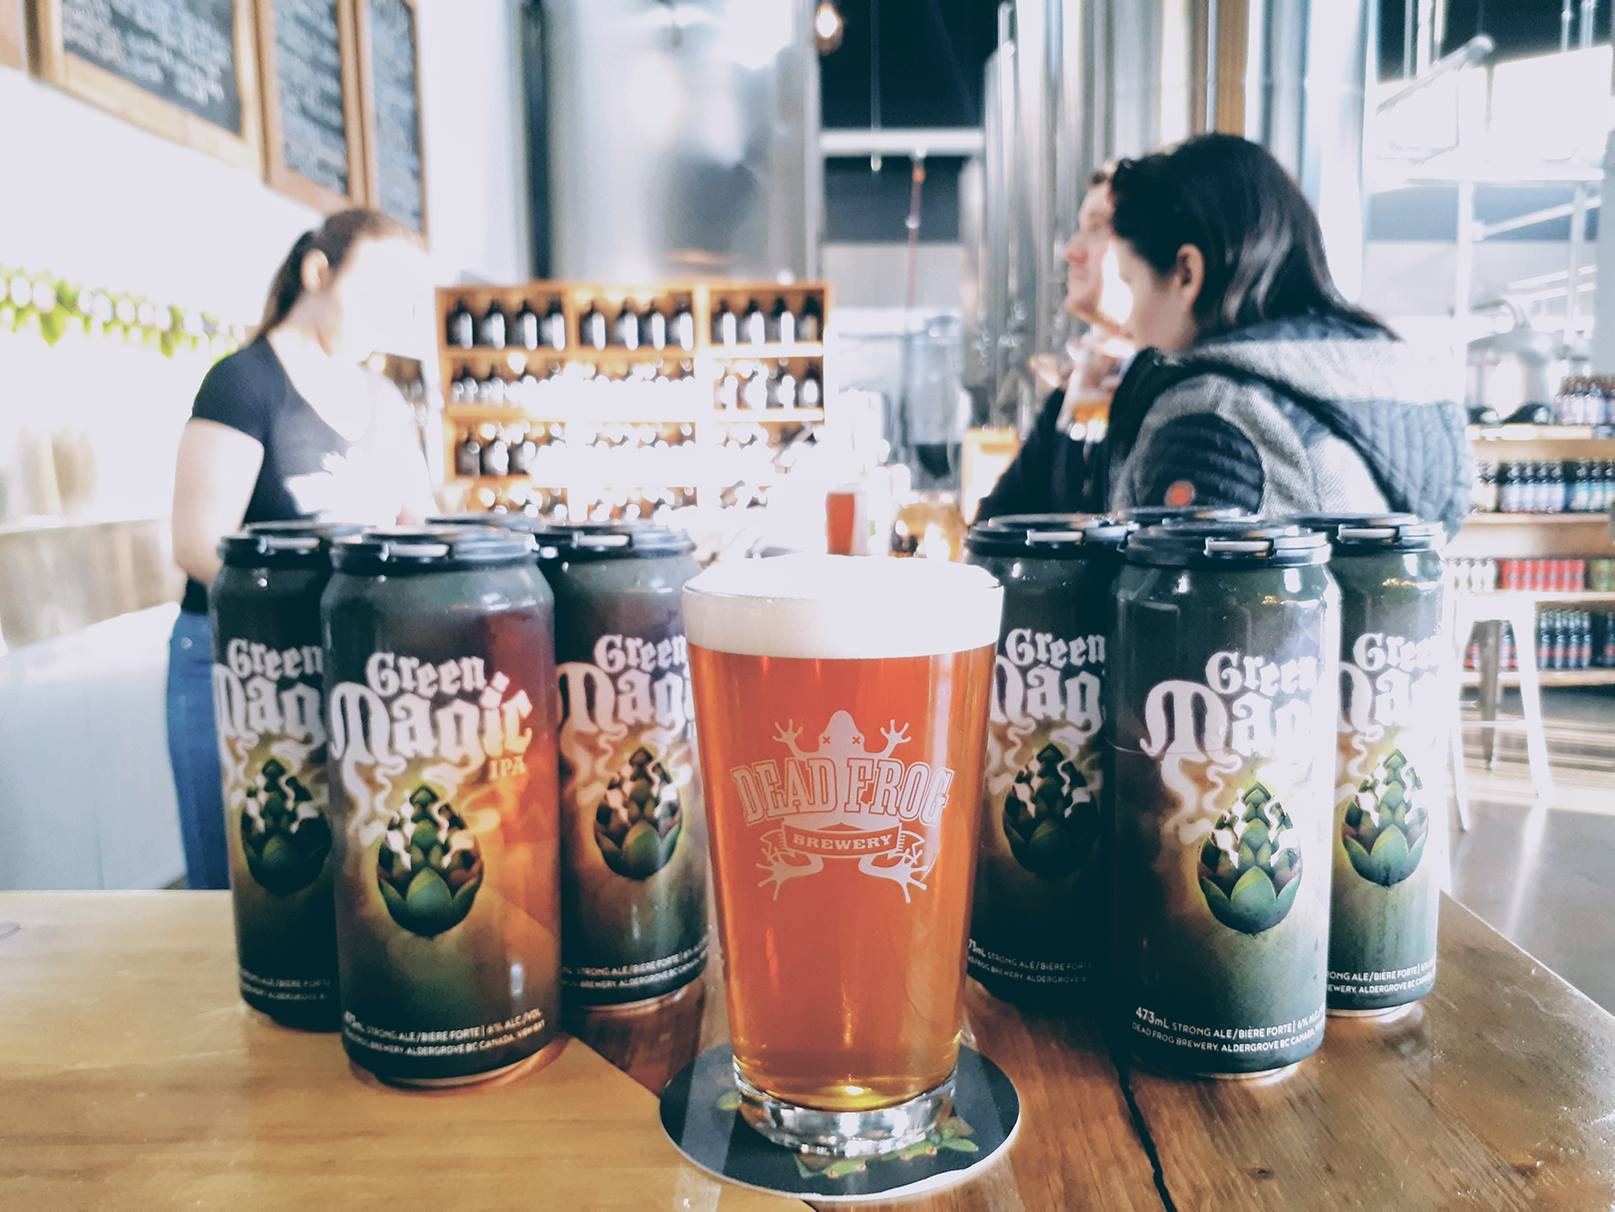 dead frog brewery experience langley